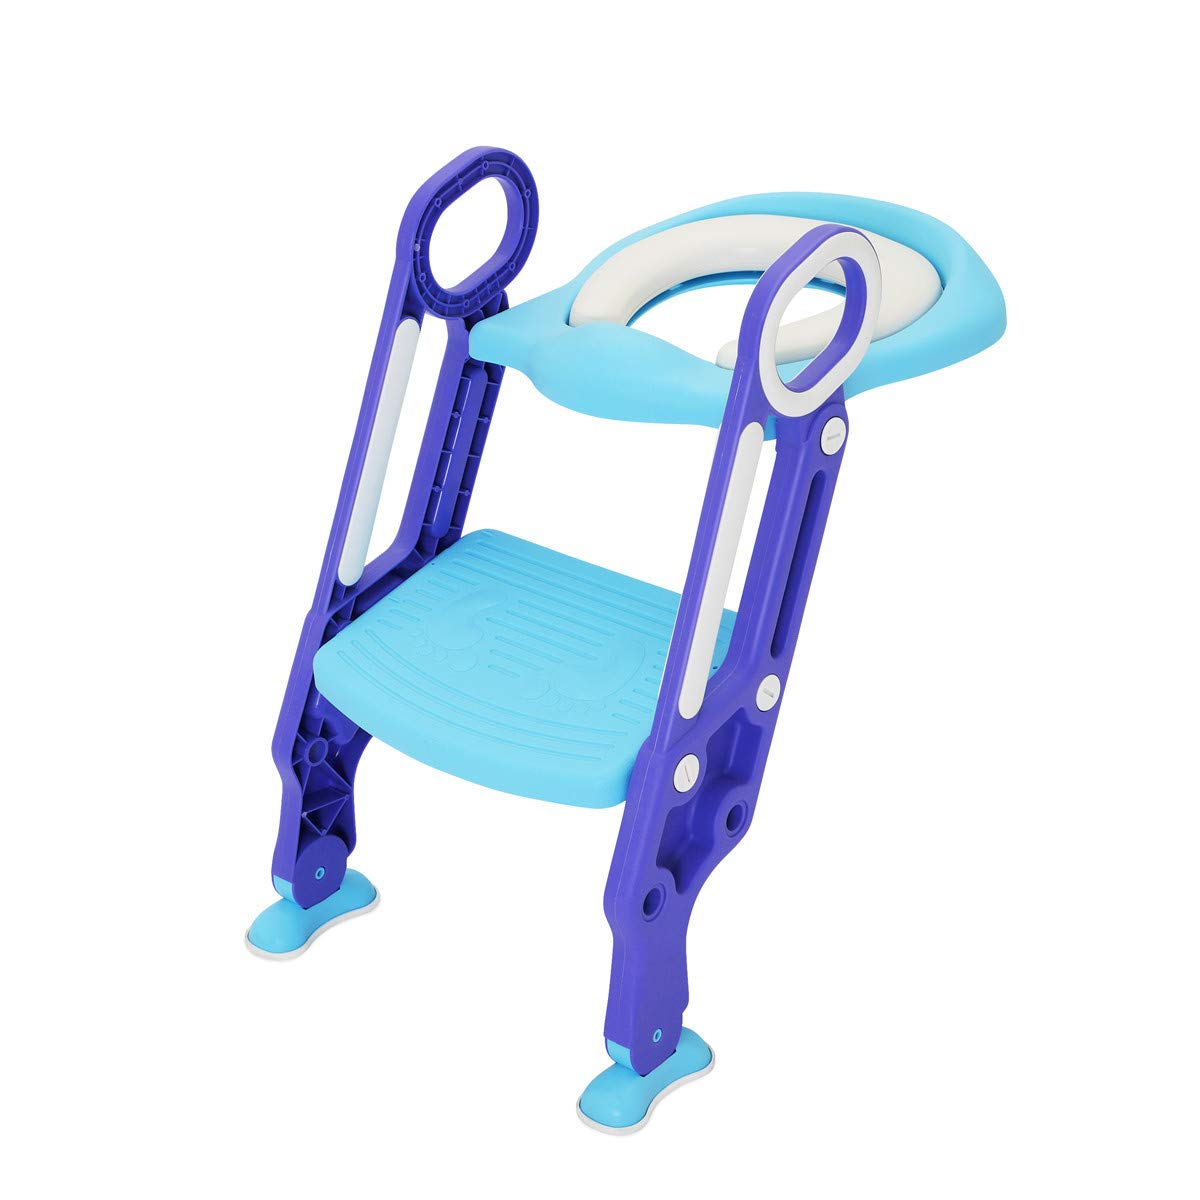 Children Potty Training Seat with Ladder - CrazyLynX Adjustable Baby Toilet Trainer Seat with Step Stool Ladder and Soft Toilet Seat, Sturdy & Non-Slip, for Todderls Baby Children (Purple & Blue) by CrazyLynX (Image #1)